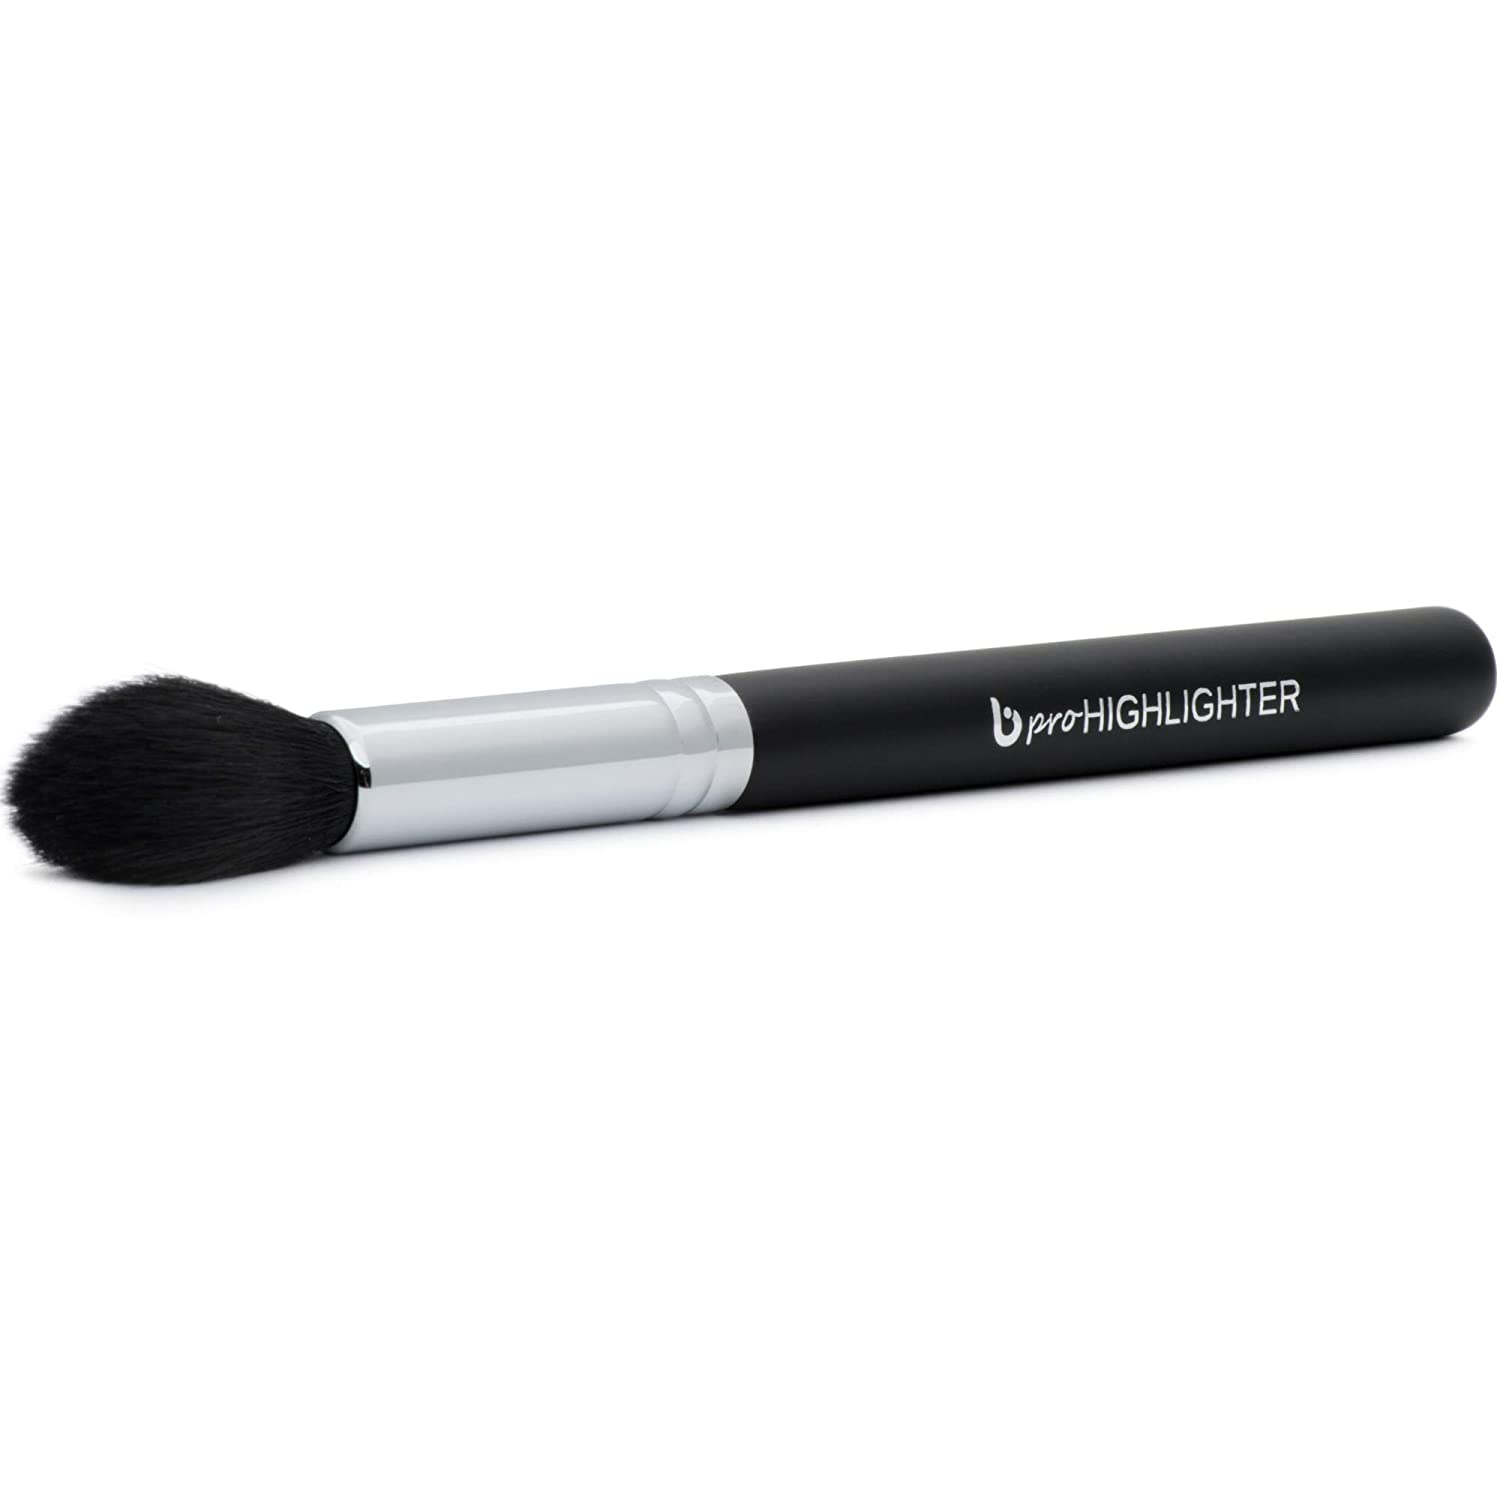 Professional Tapered Highlighter Makeup Brush - Highlighting and Contour Face, Small Taper to Highlight Eyes, Brows, Works with Cream, Powder, Mineral Cosmetics, Premium Cruelty Free Synthetic Vegan